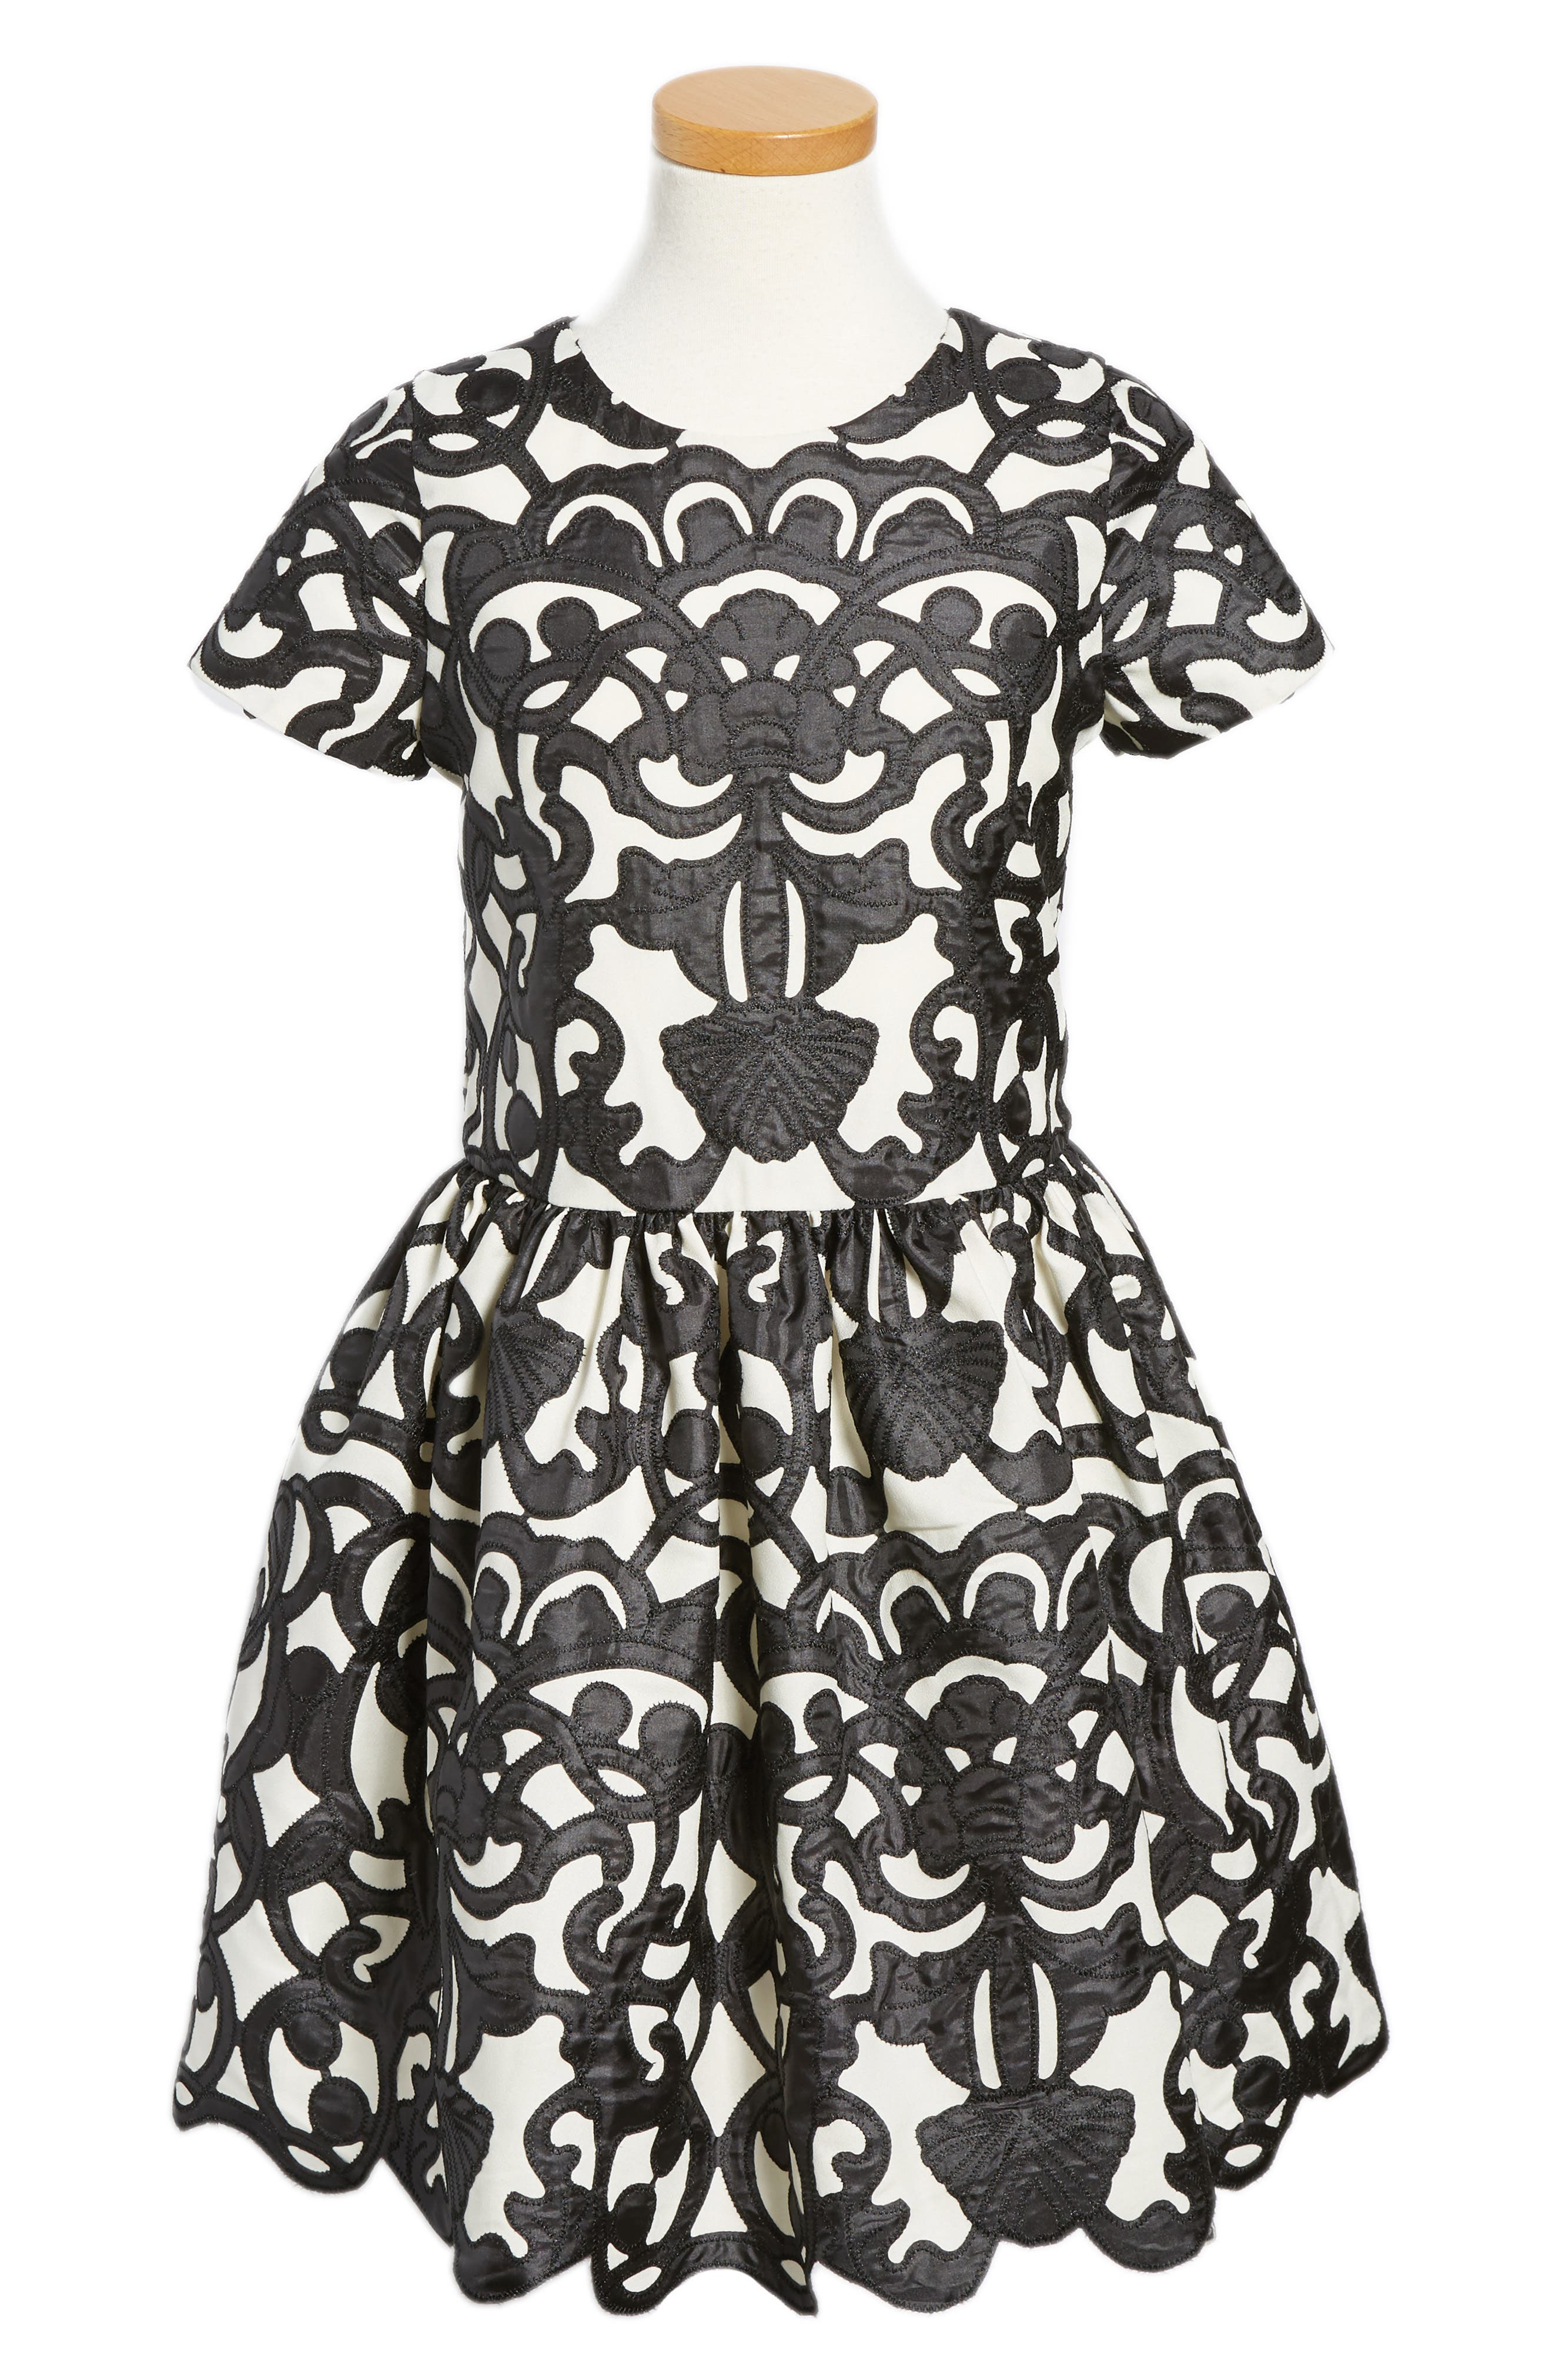 Main Image - Ava & Yelly Laser Cut Appliqué Dress (Big Girls)